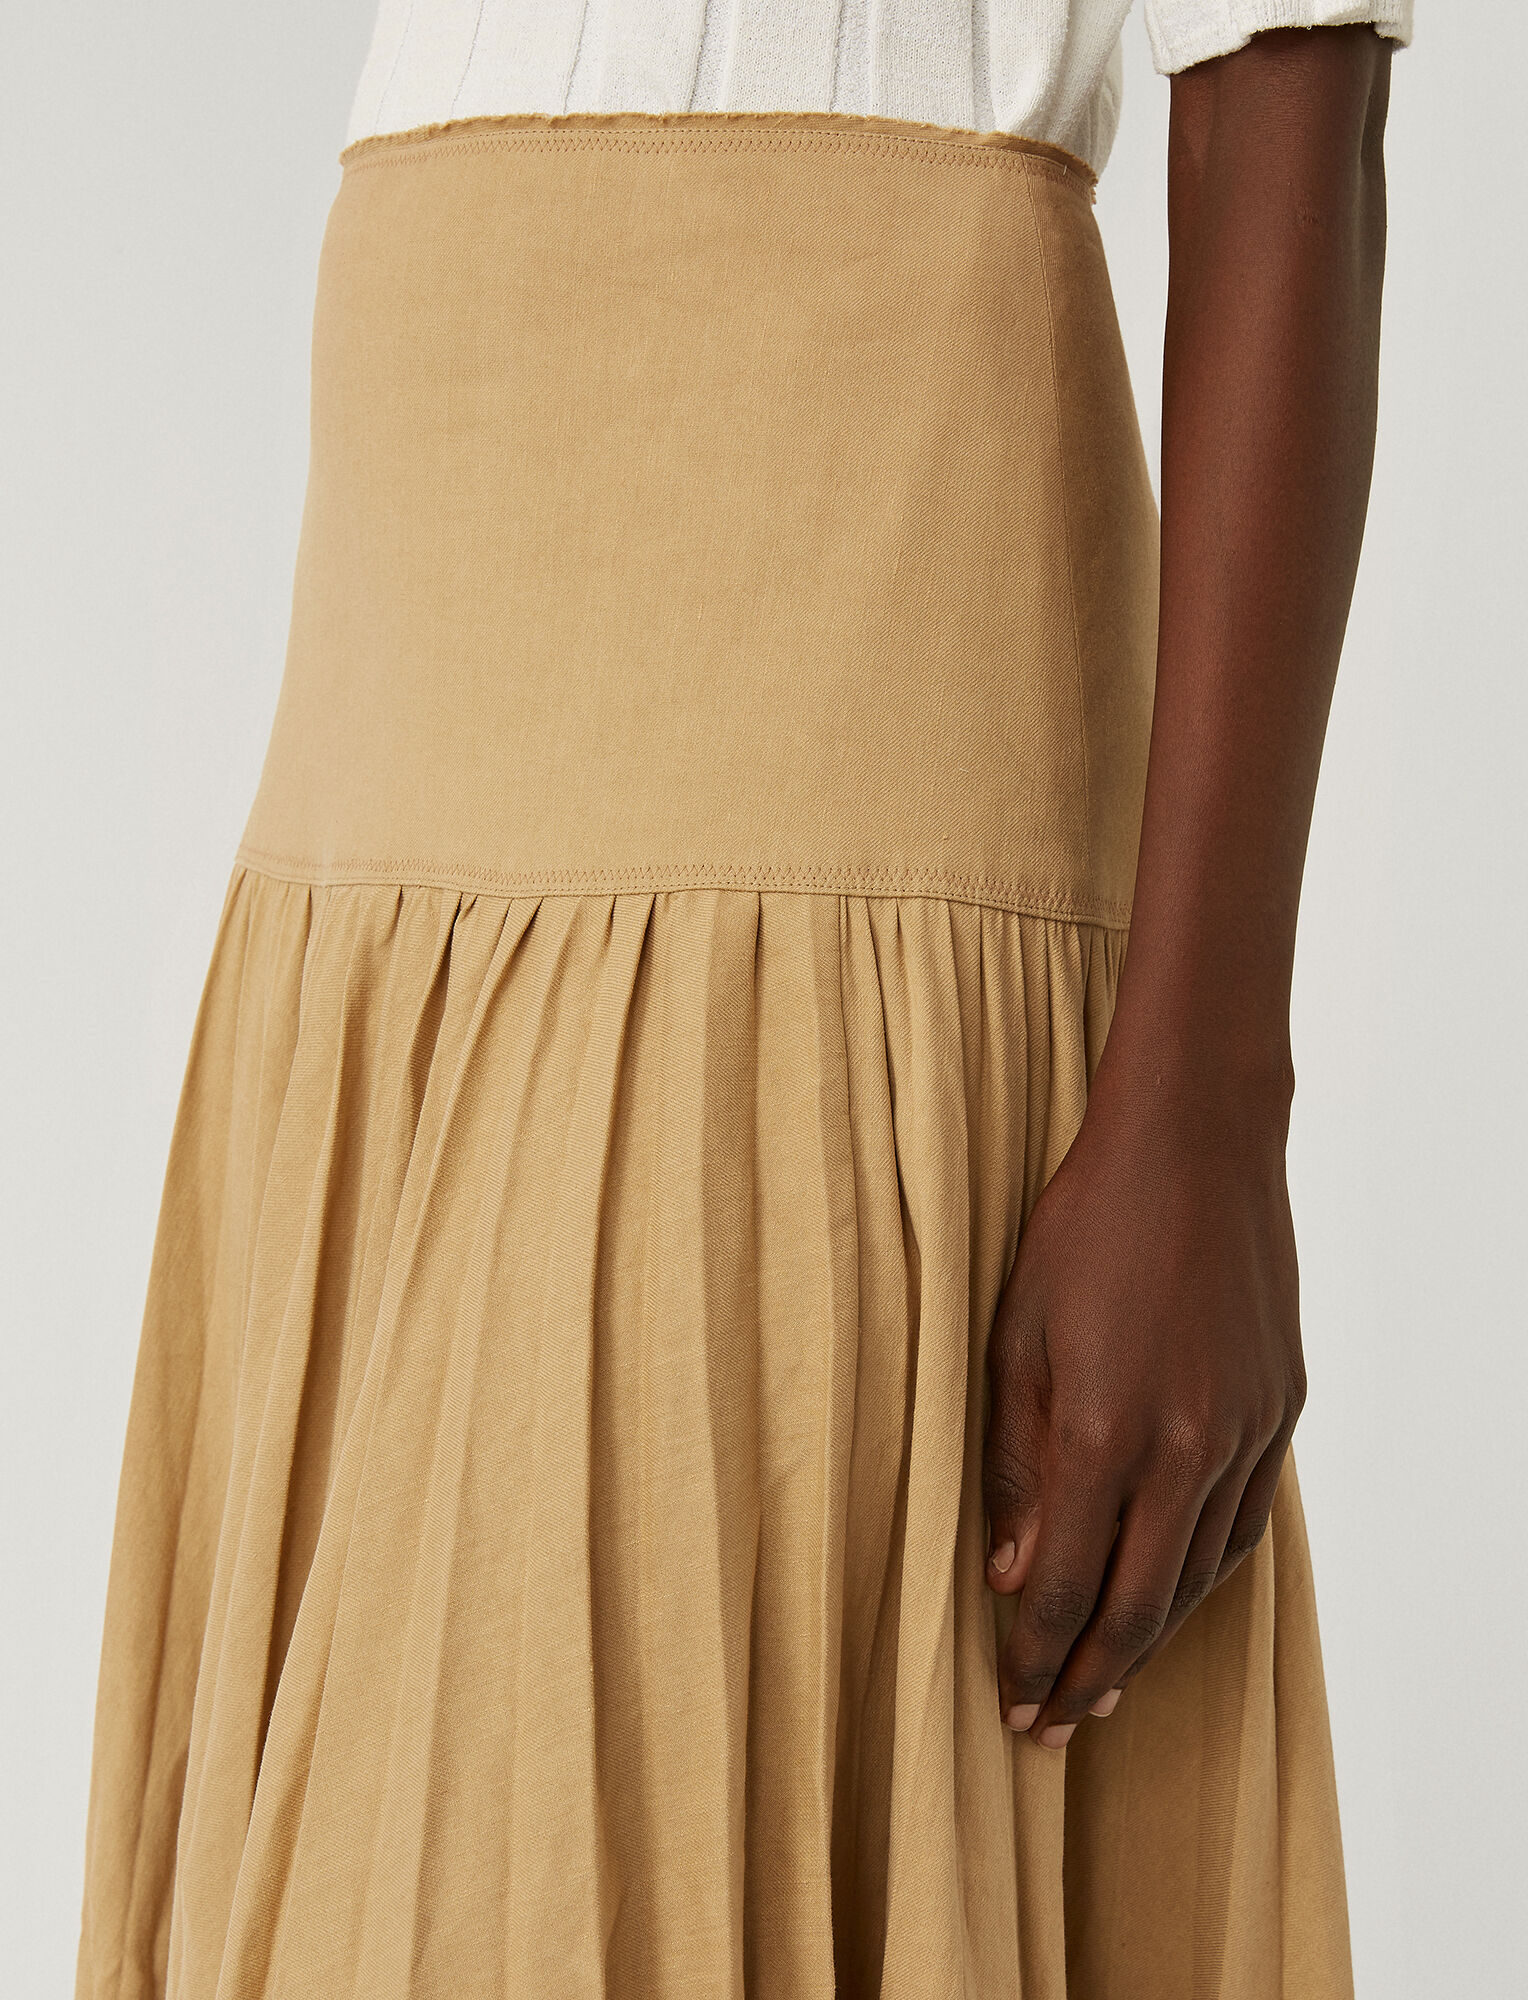 Joseph, Stretch Linen Cotton Sven Skirt, in TOFFEE